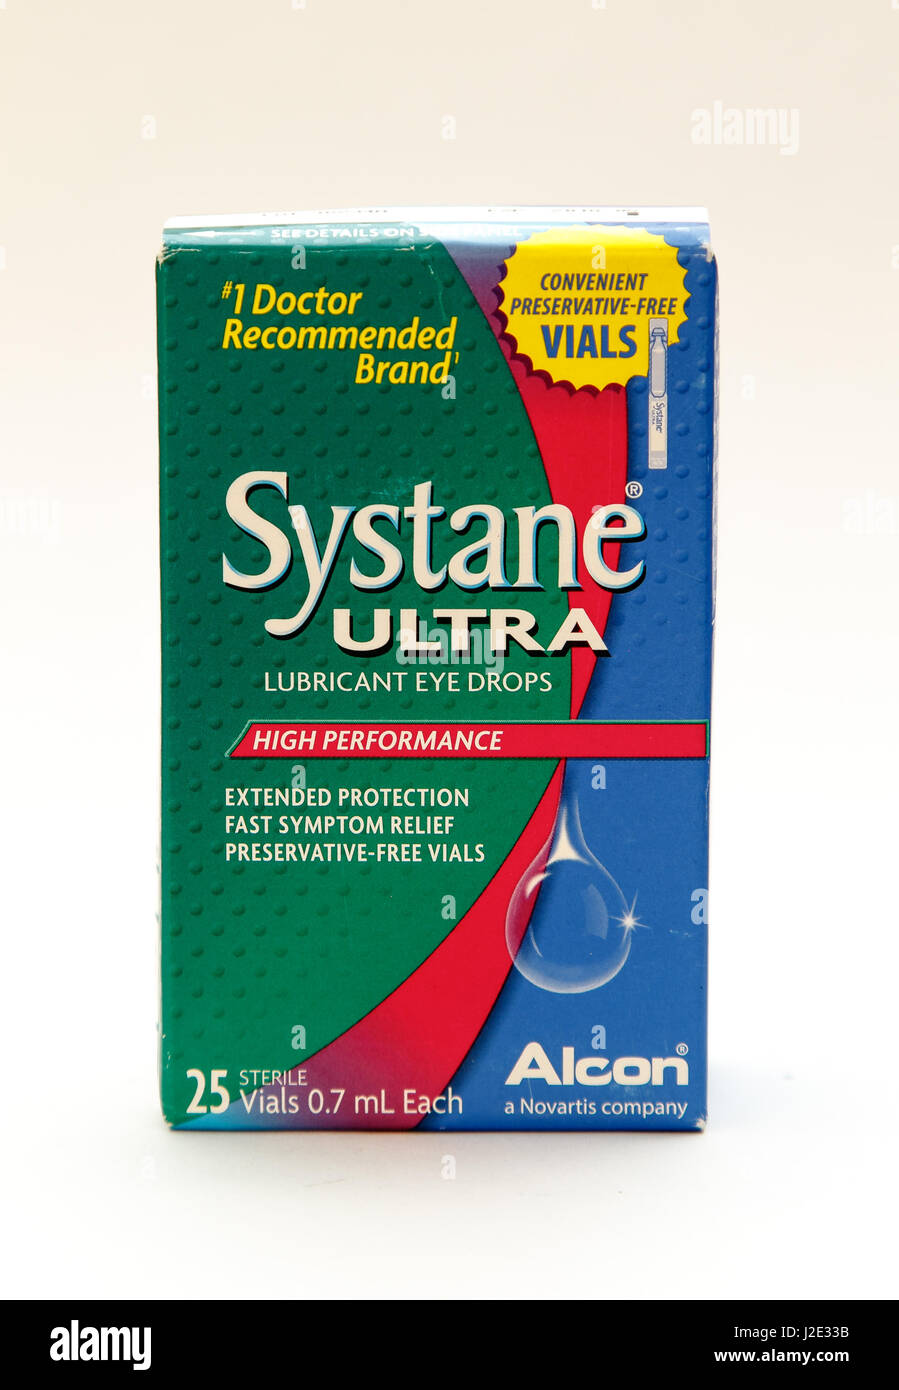 New York, January 25, 2017: A Pack Of Systane Lubricant Eye Drops Stands